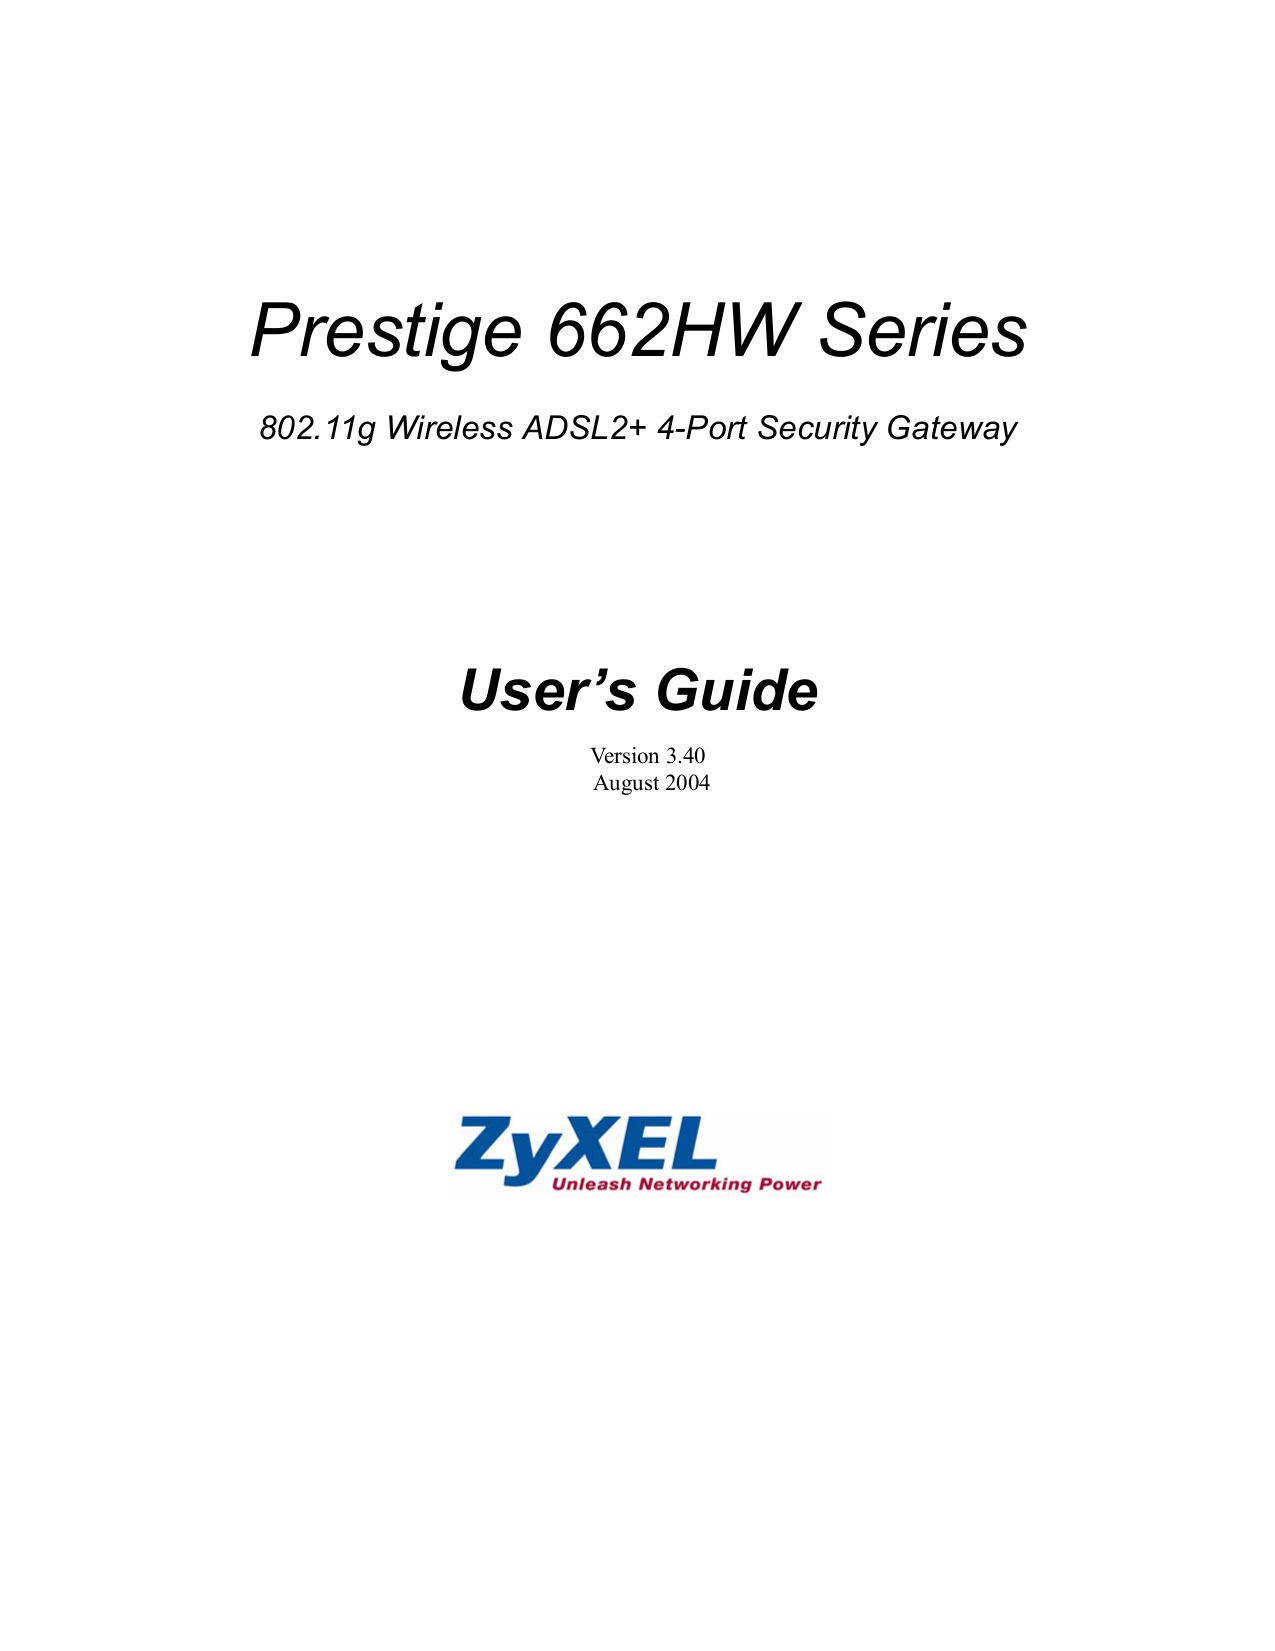 pdf for Zyxel Wireless Router P-662HW-67 manual